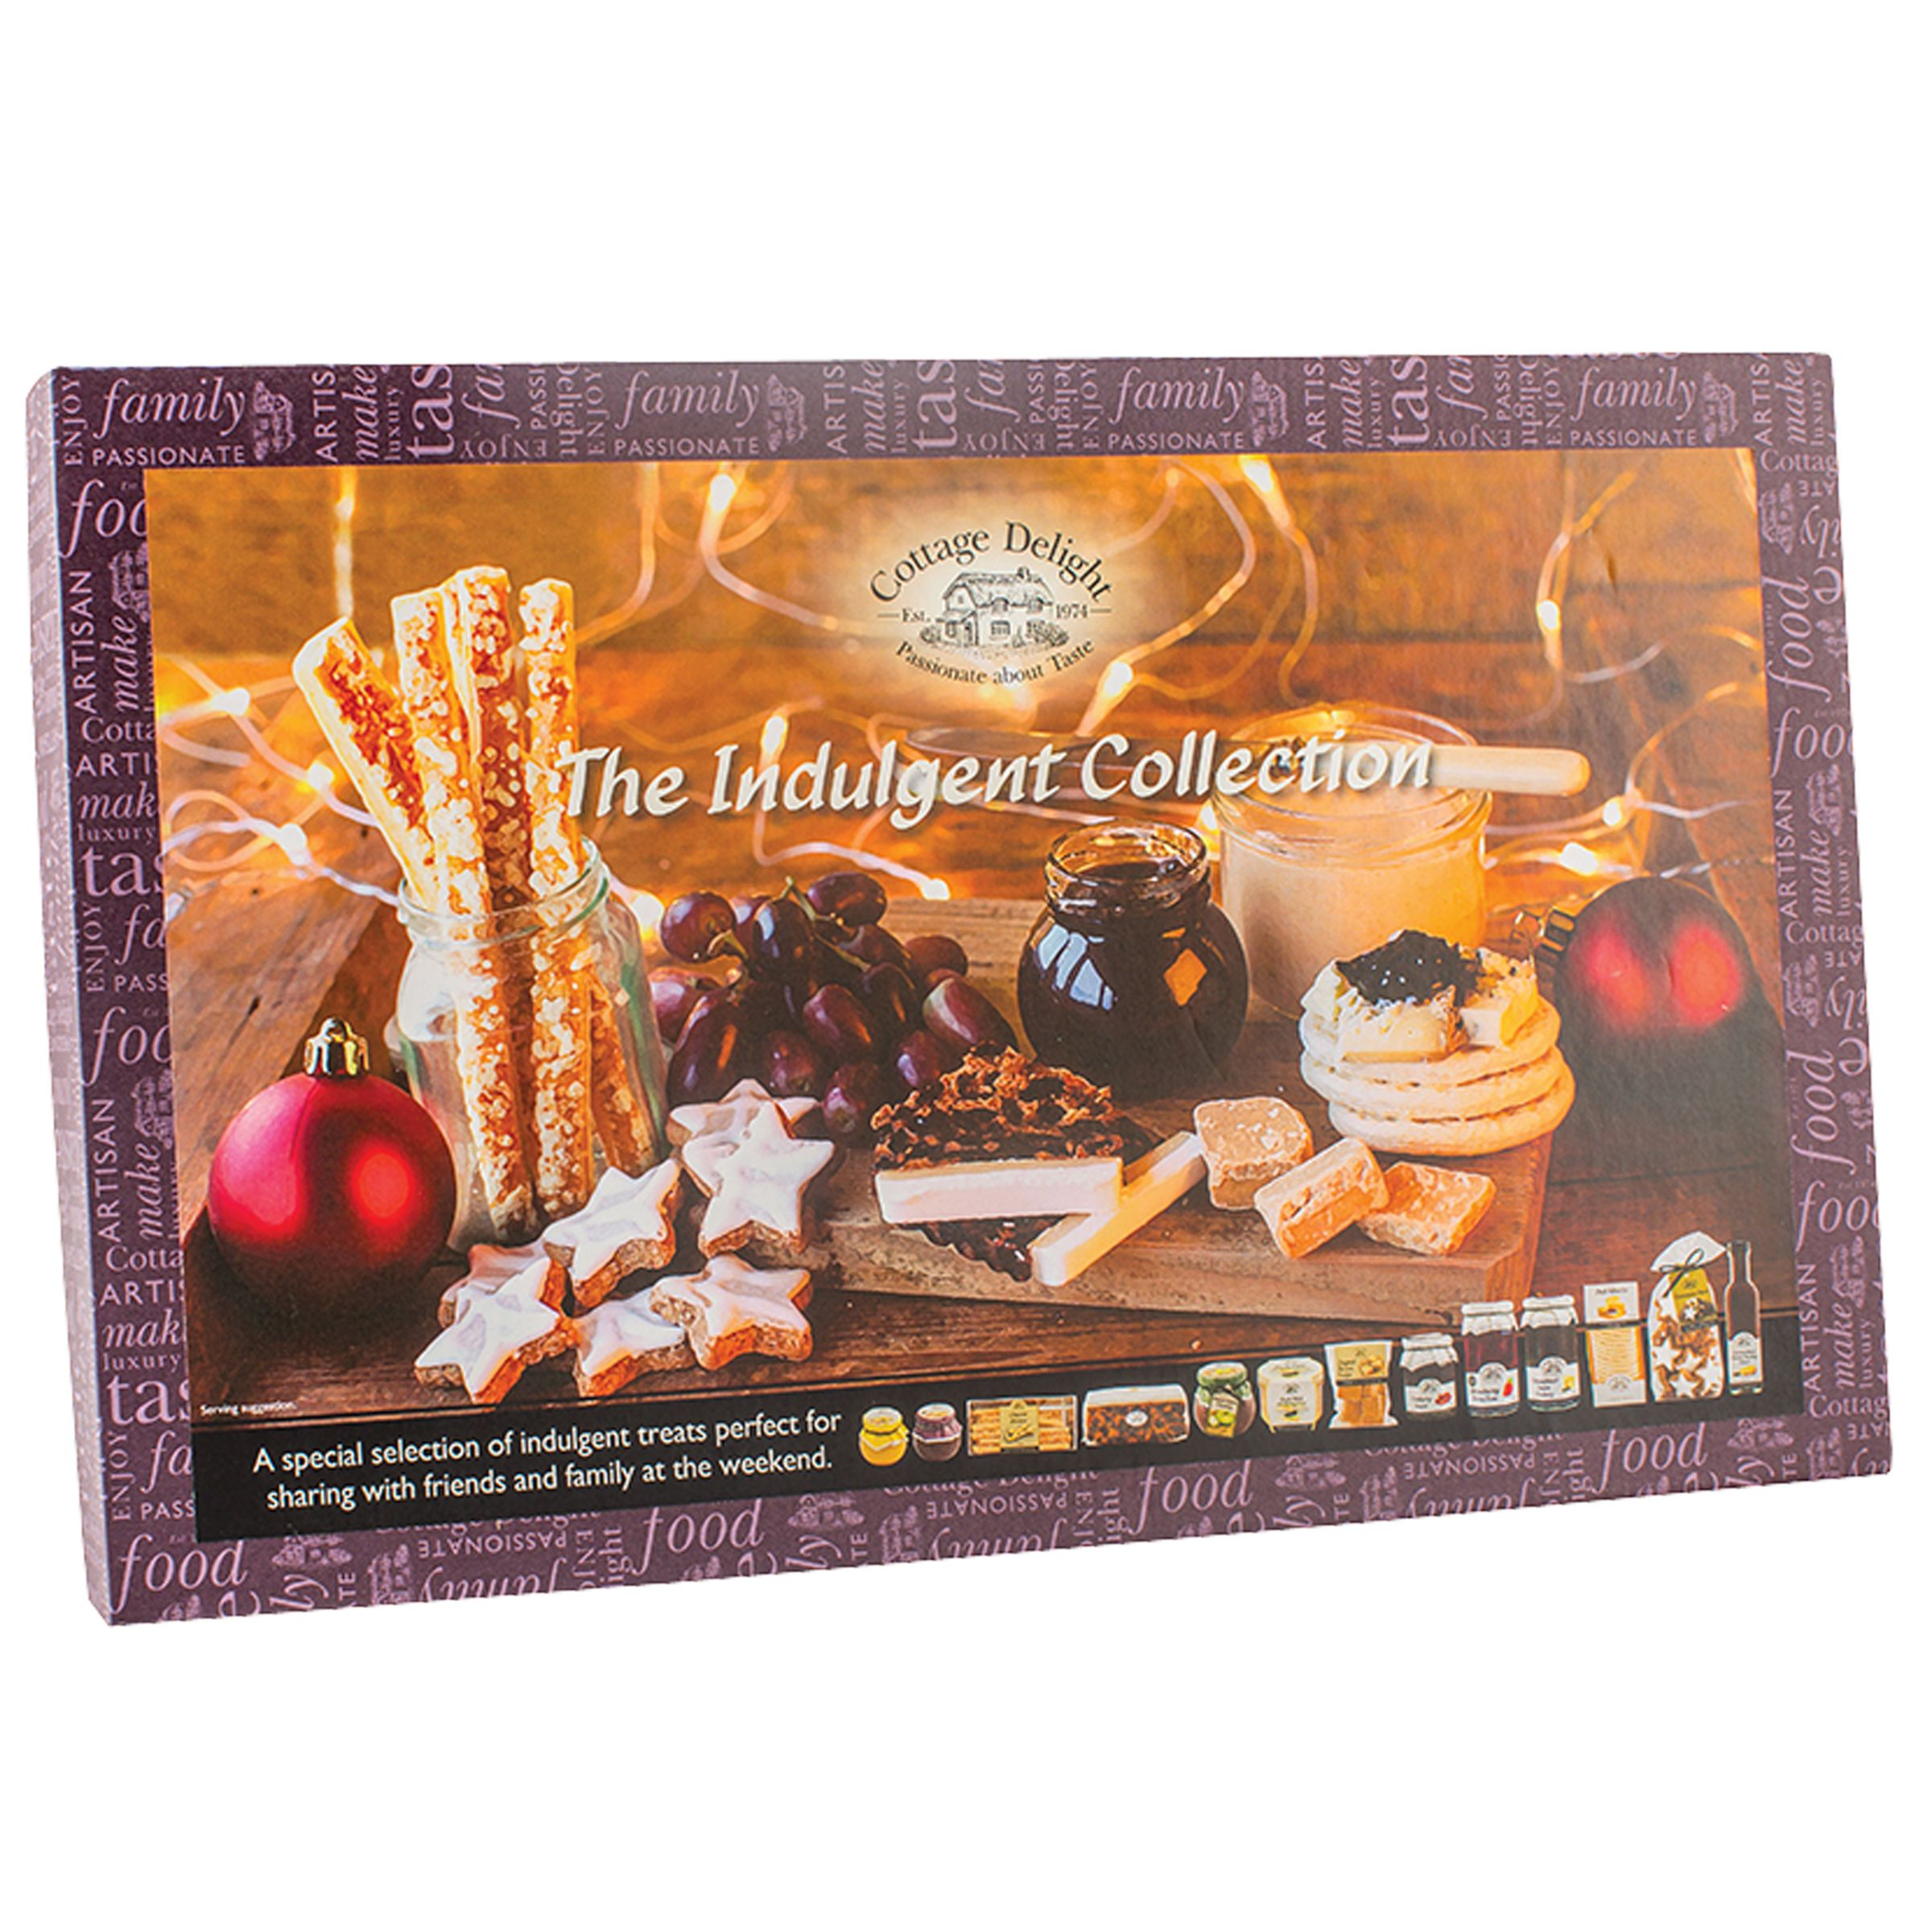 Cottage Delight Cottage Delight The Indulgent Collection